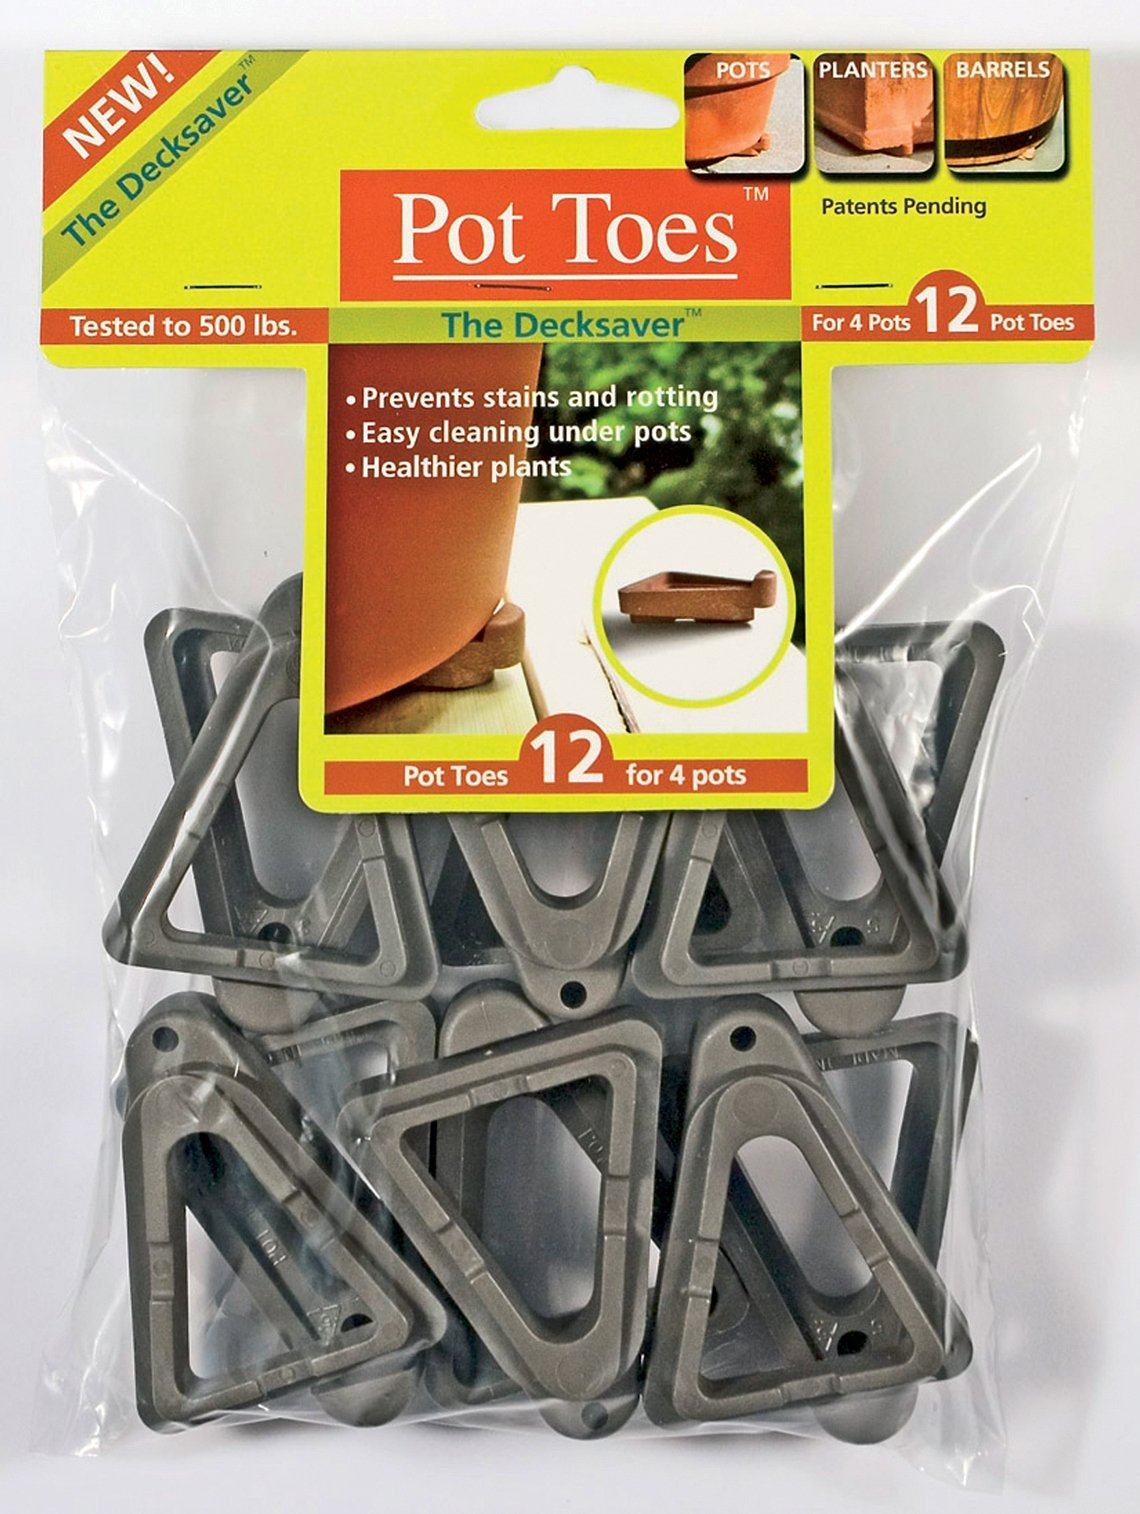 IGC Cartanna Plantstand PT-12CHHT 12-Pack Dark Gray Pot toes